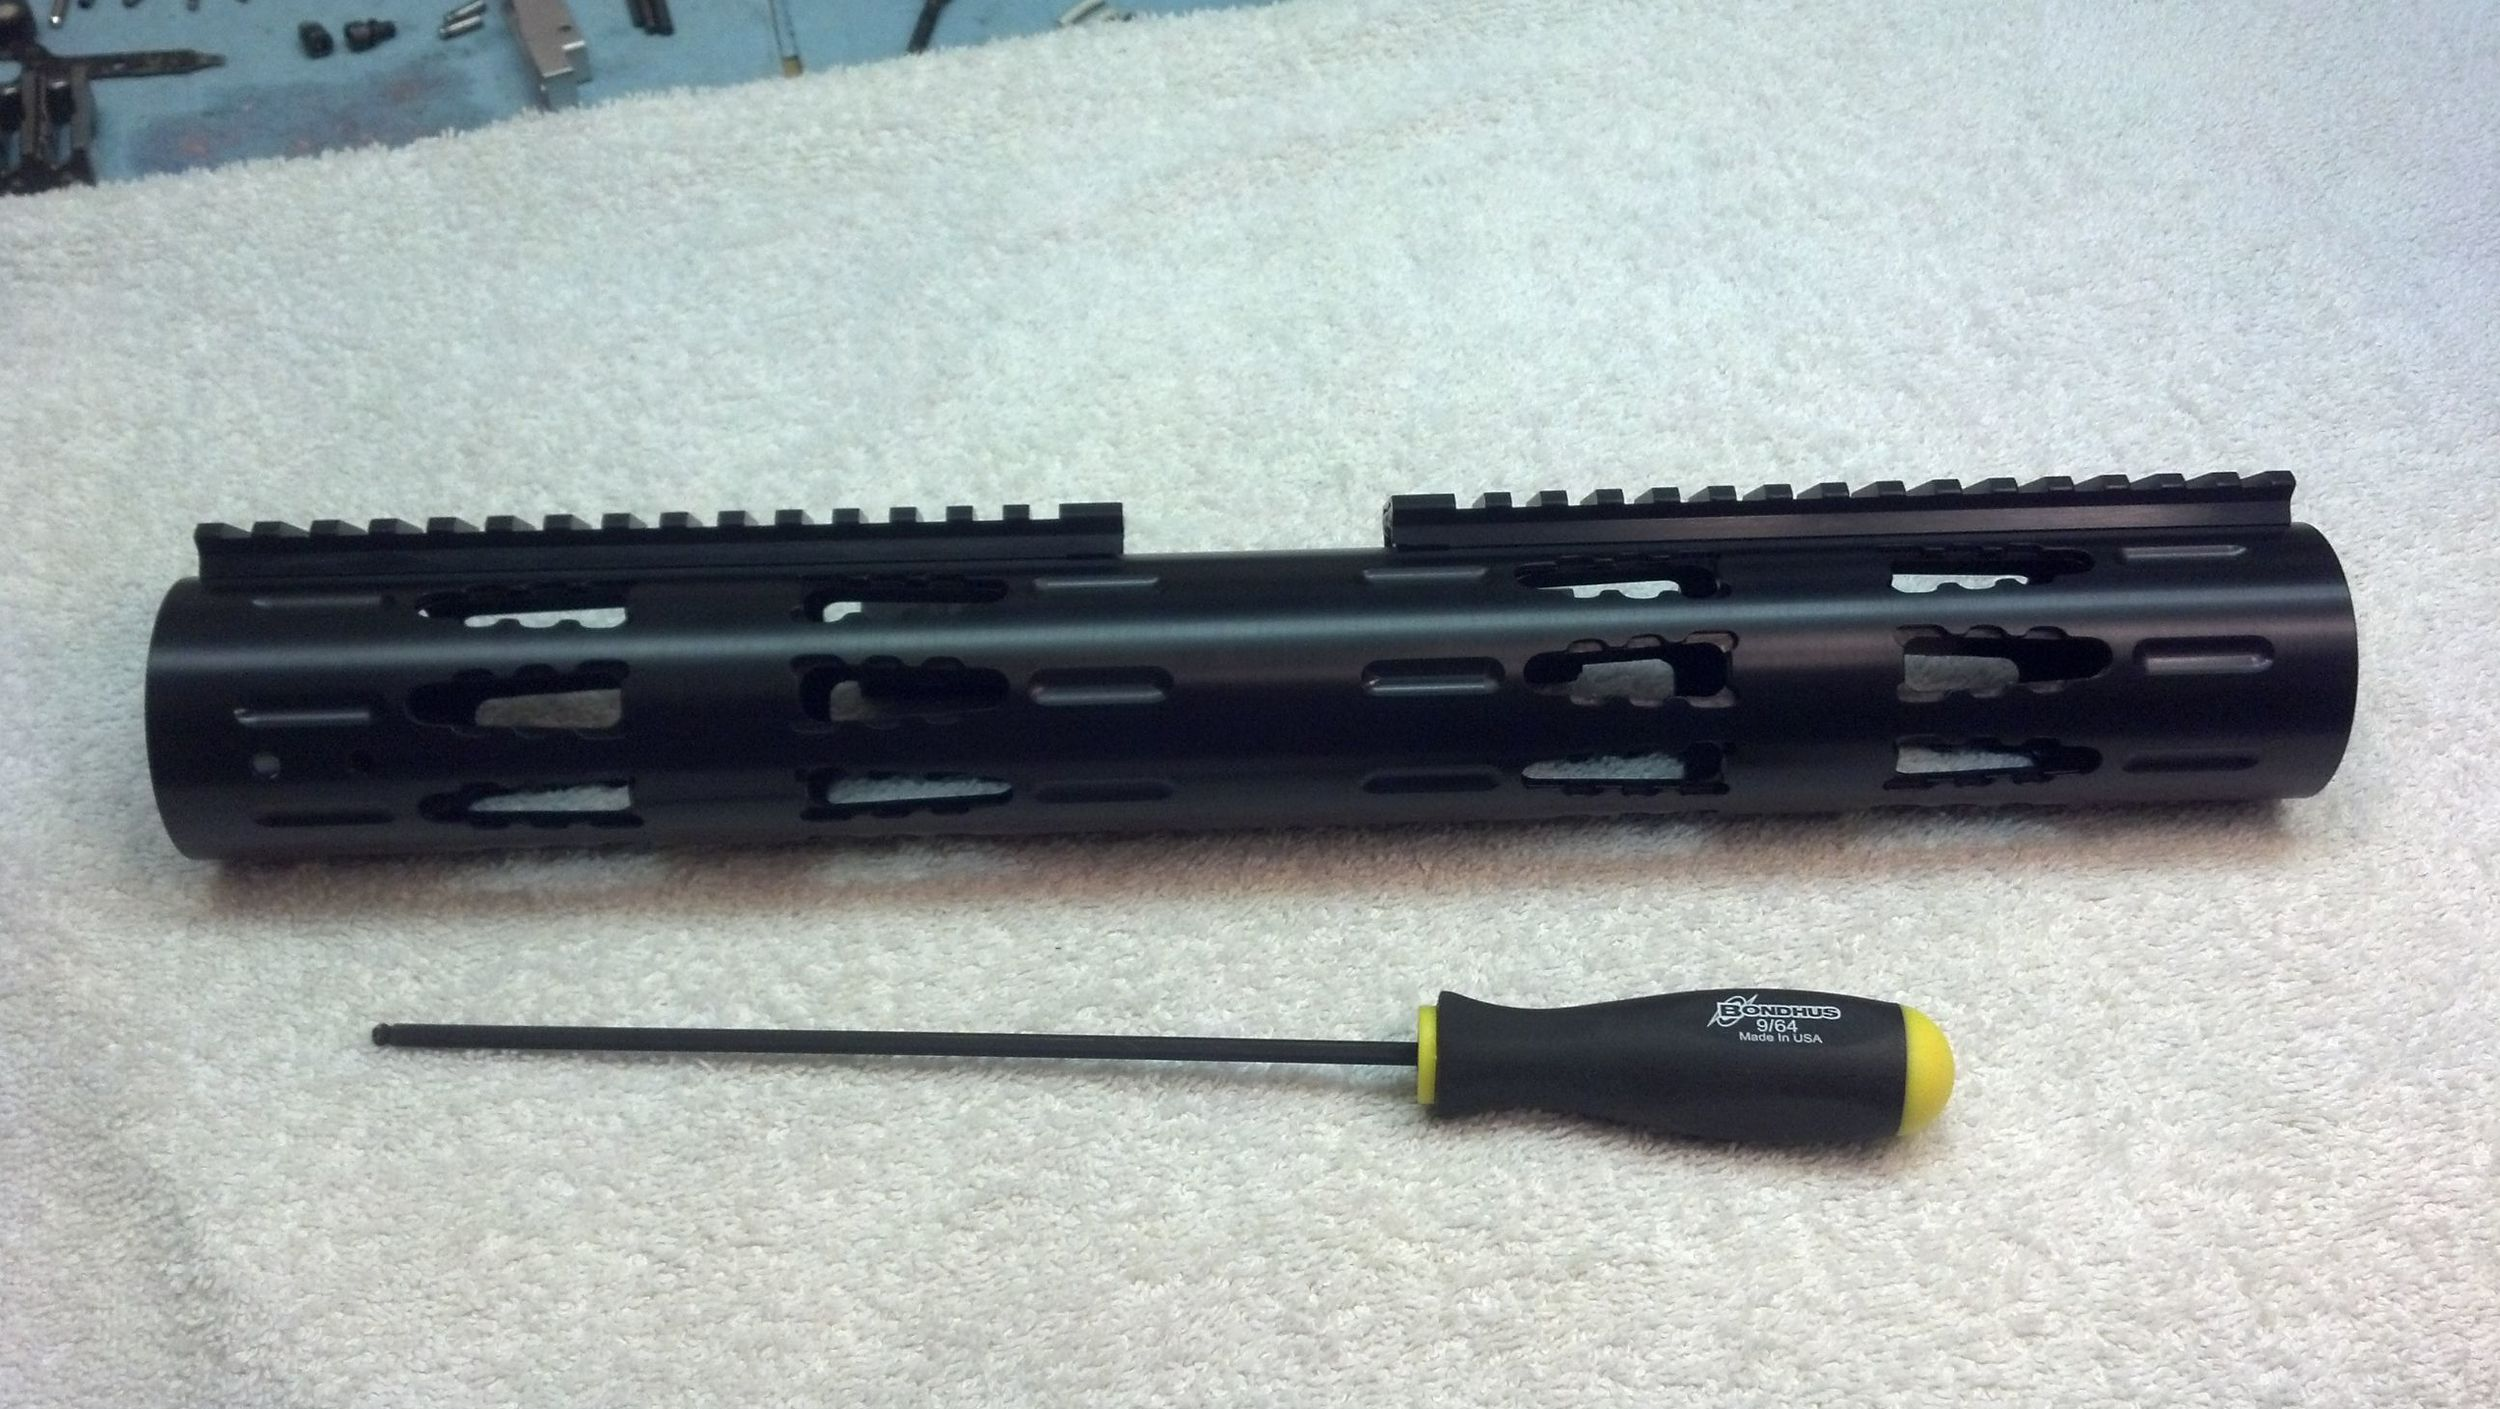 Extended-Length RRAC Tactical Handguard with Extended RRAC Rails, attached screws facing middle